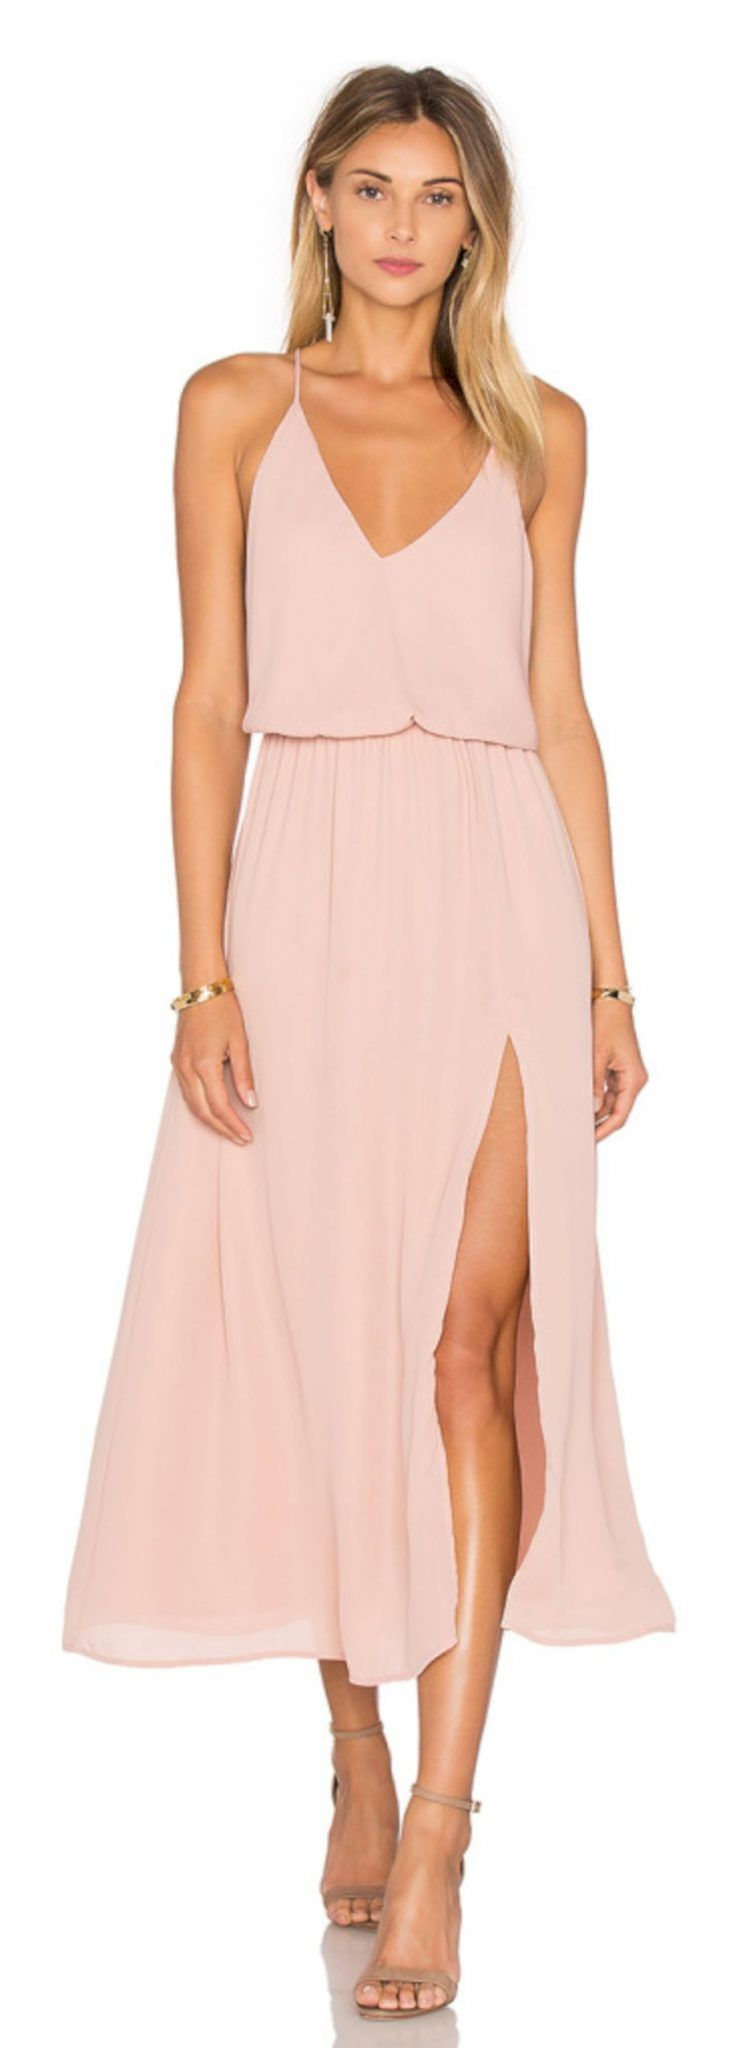 75 Stylish Formal Midi Dresses Outfits Ideas that Must You Try